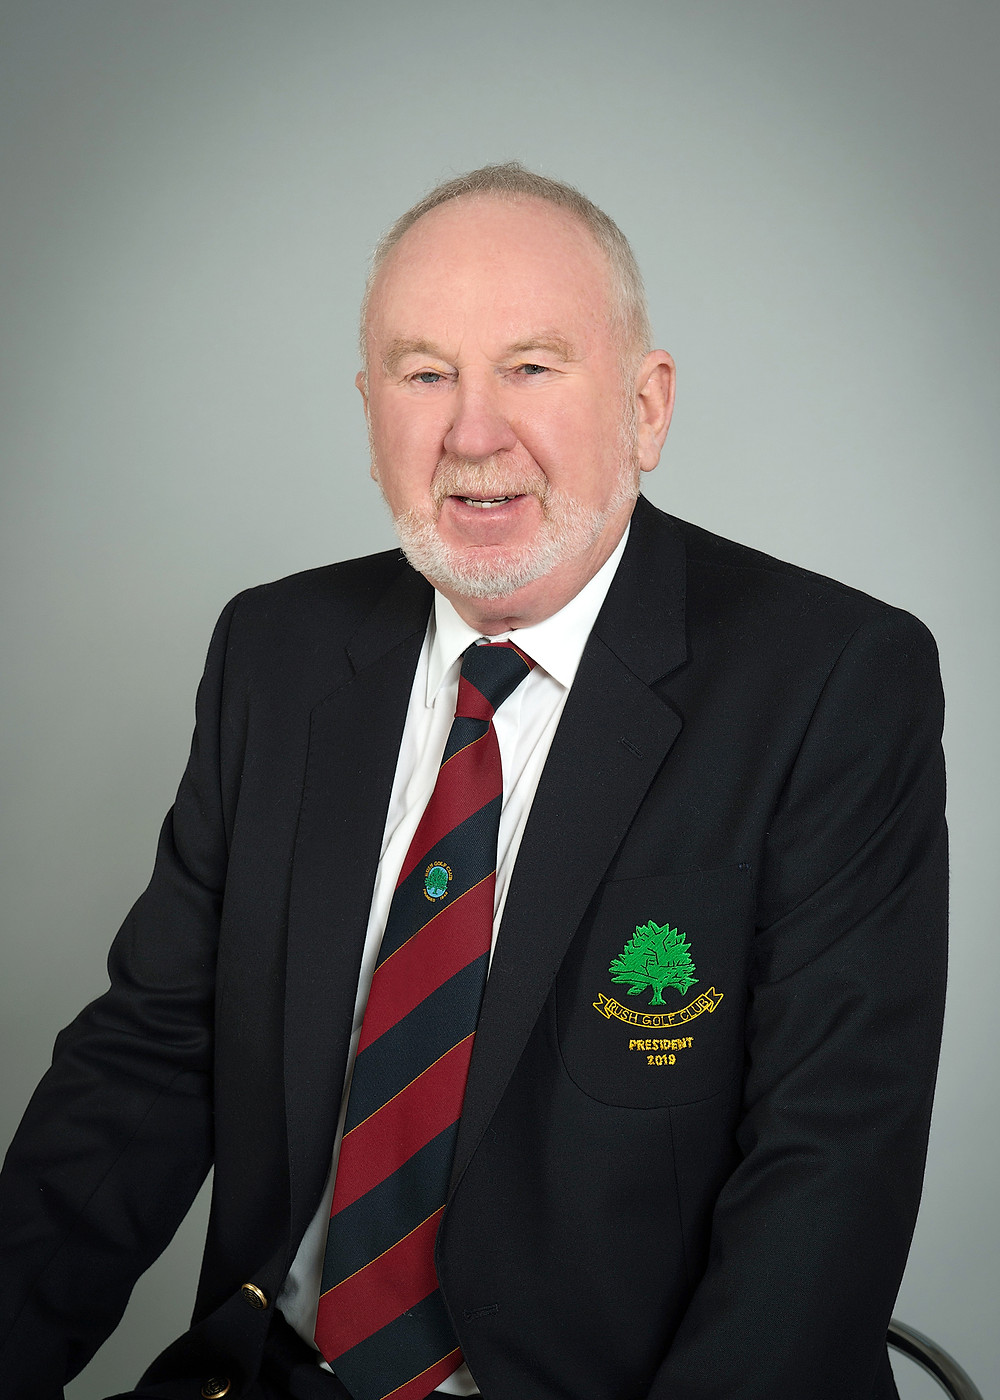 Joe Landy - Rush Golf Club President 2019